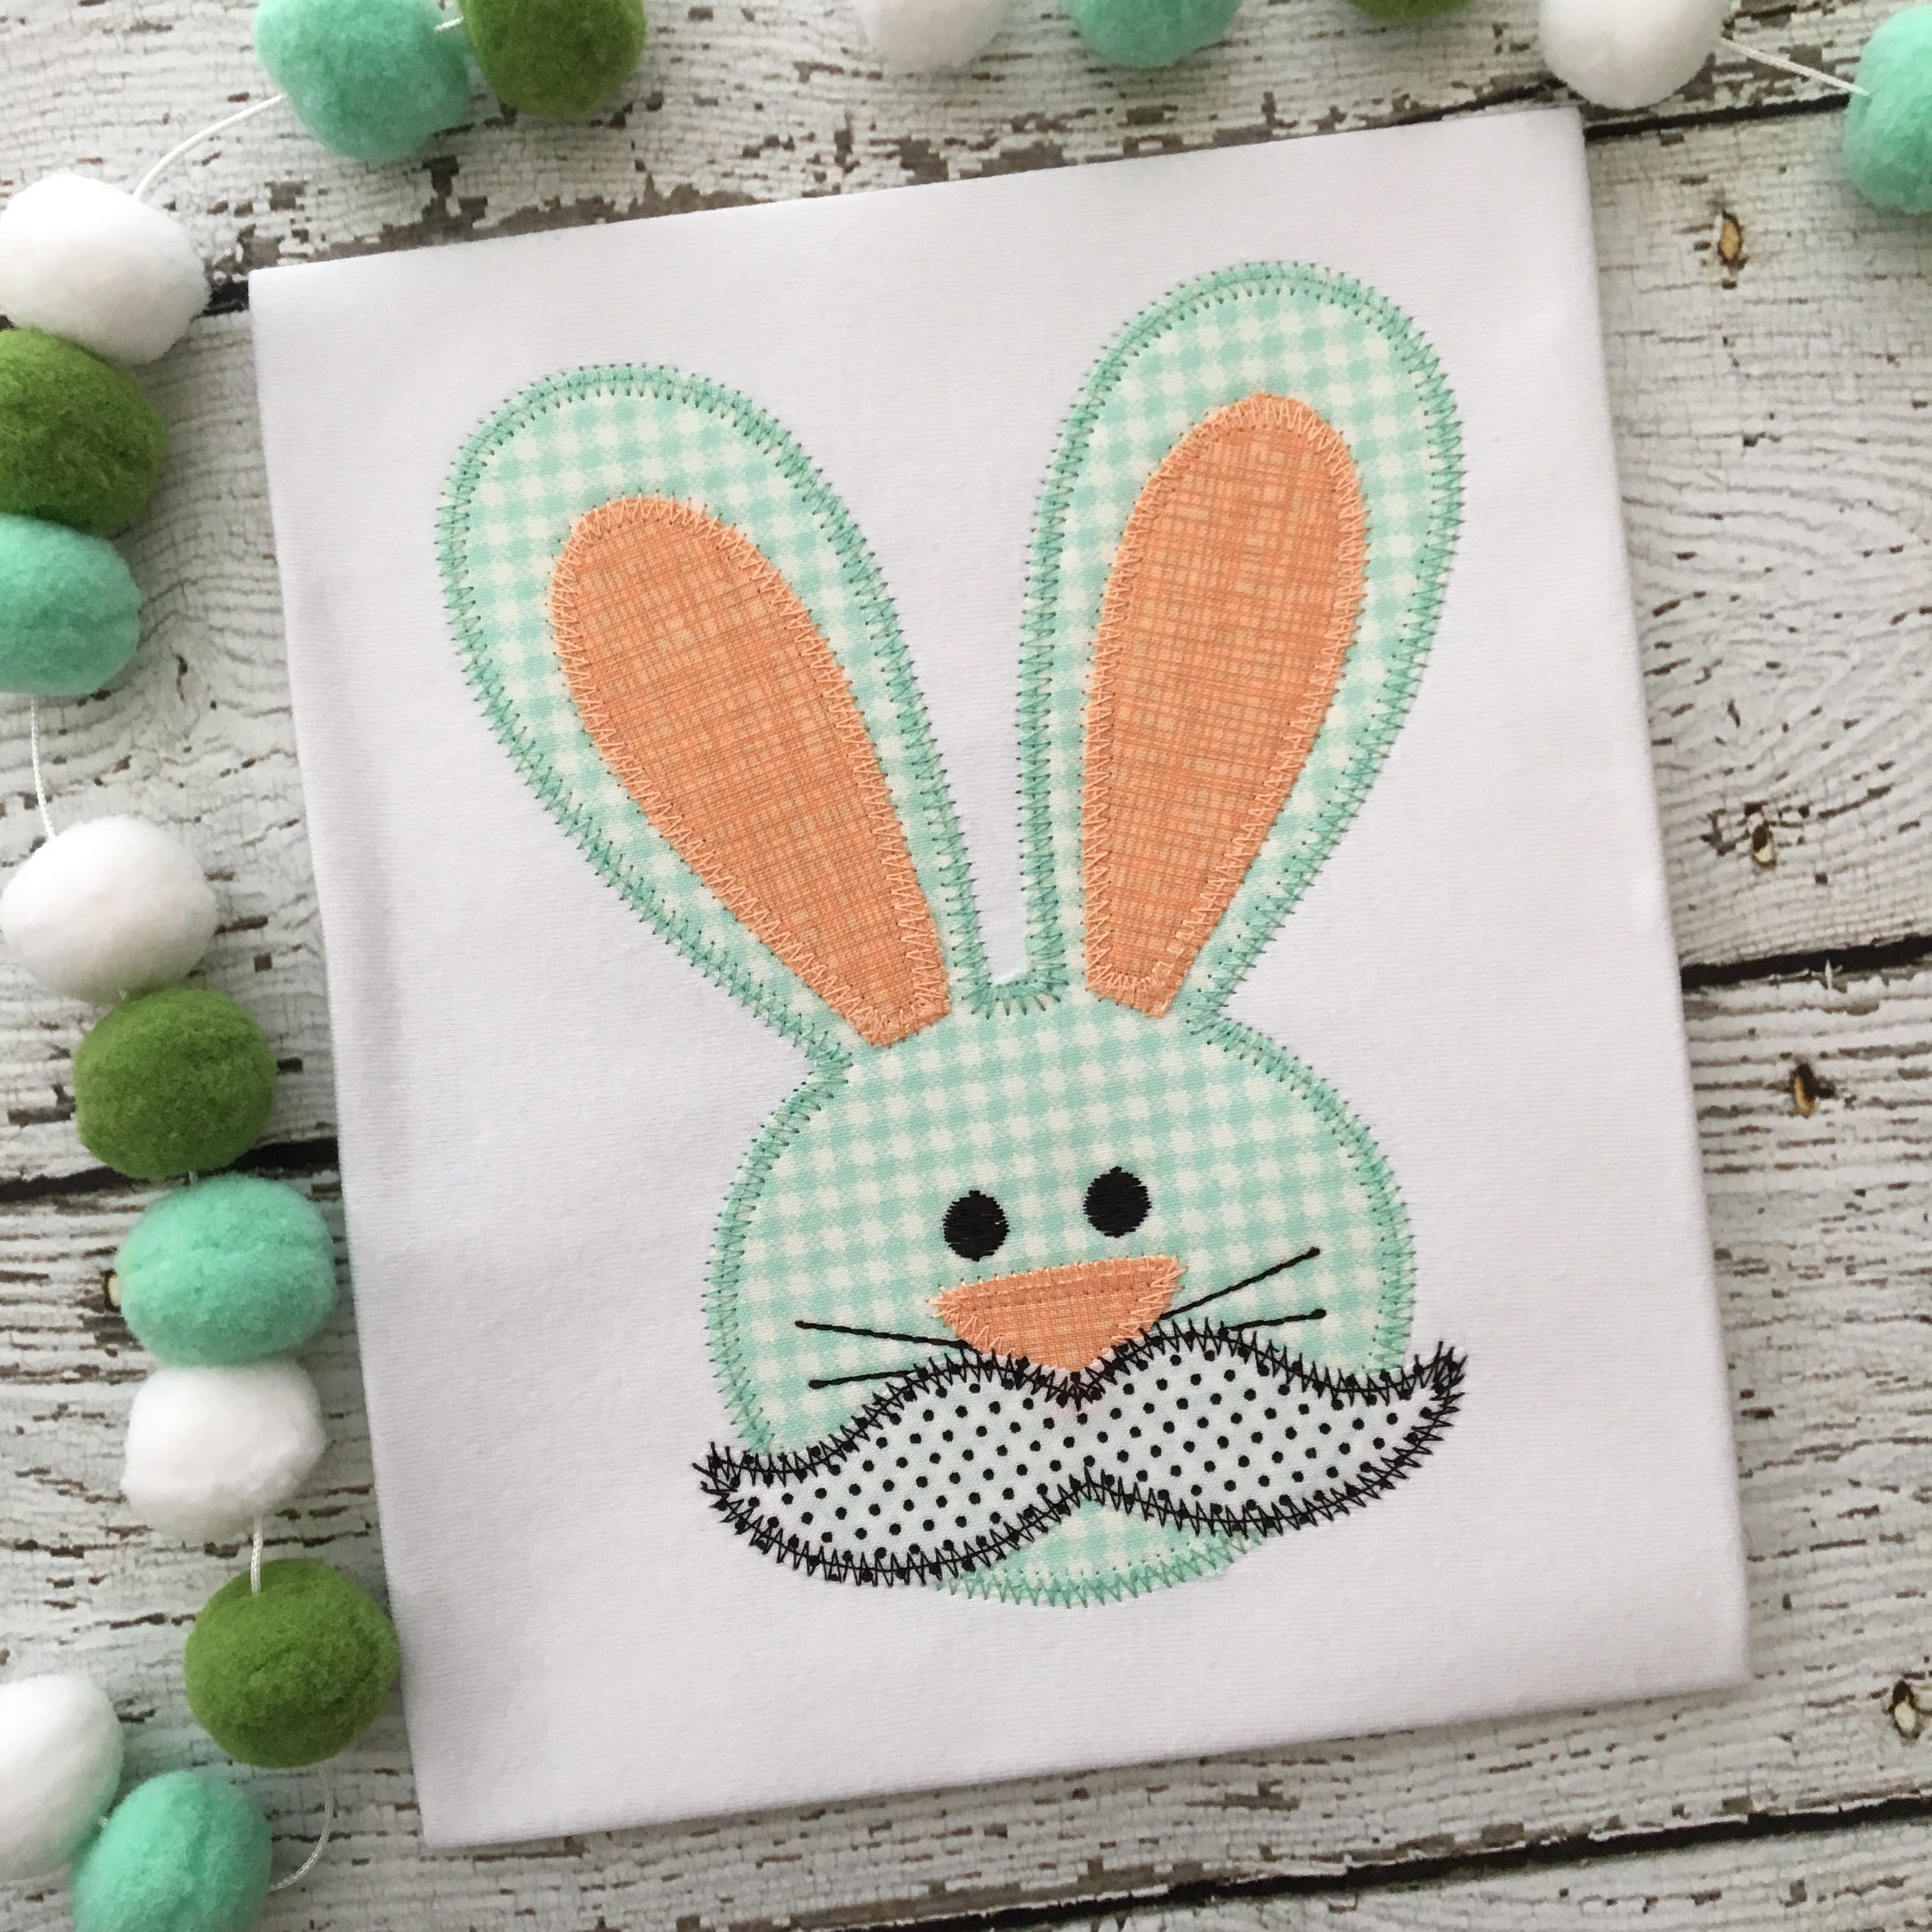 Rabbit Mustache Zig Zag Stitch Applique Design